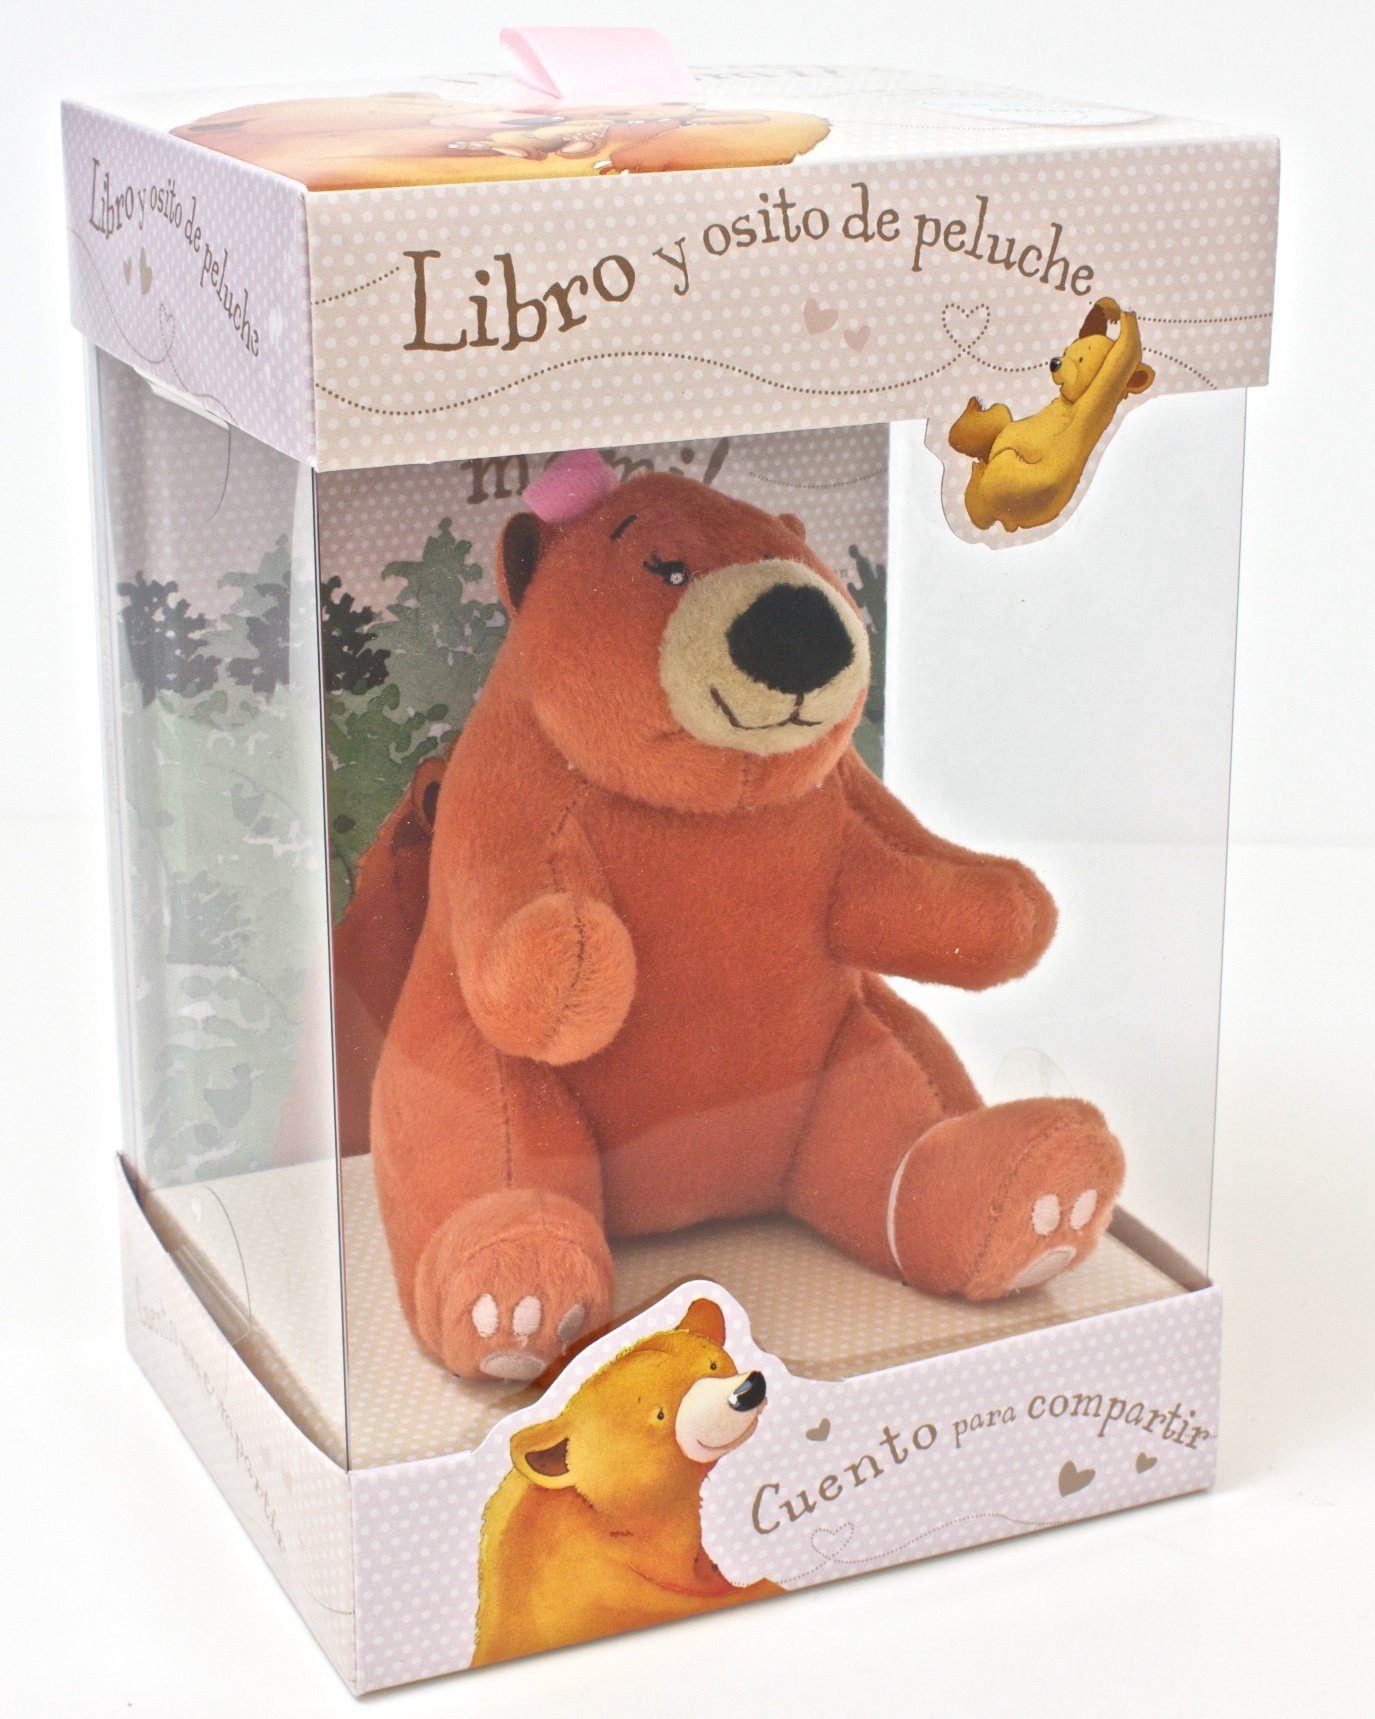 Libro y osito de peluche, ¡Te quiero, mami! (Book and Soft Toy) (Spanish Edition) (Spanish) Hardcover – August 31, 2012